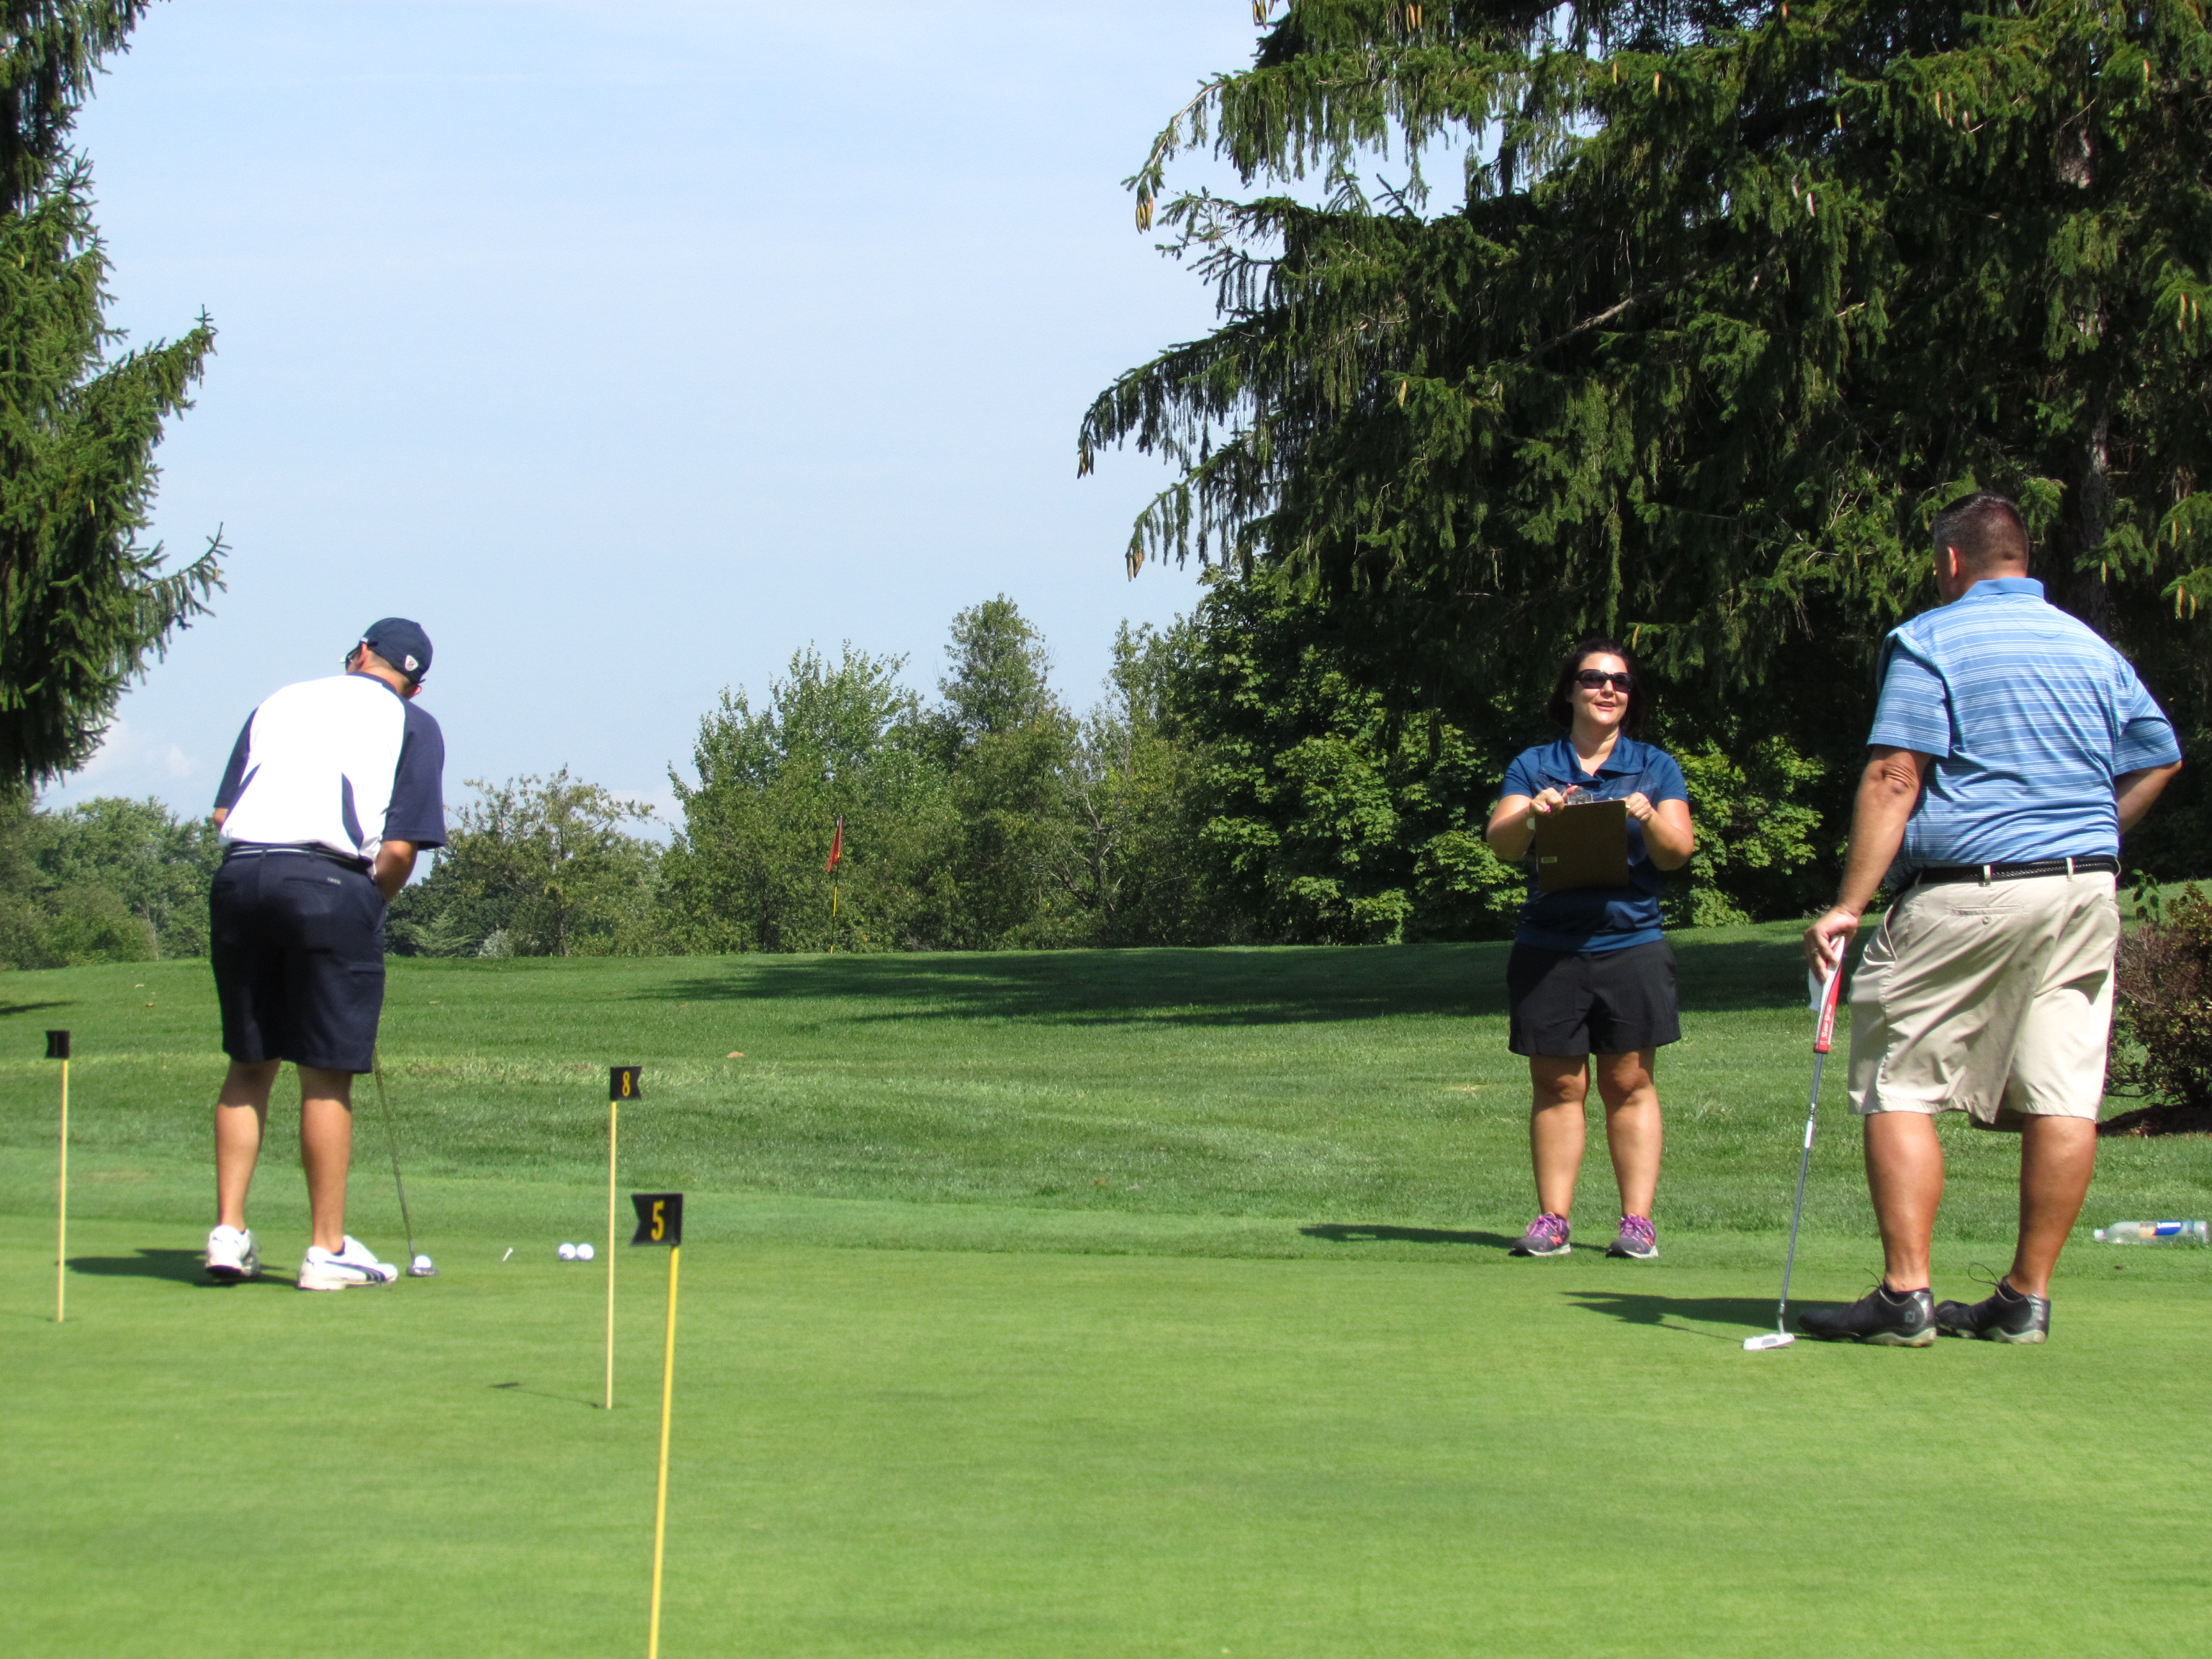 Servants 11th Annual Golf Outing - Default Image of Putting Contest Sponsor